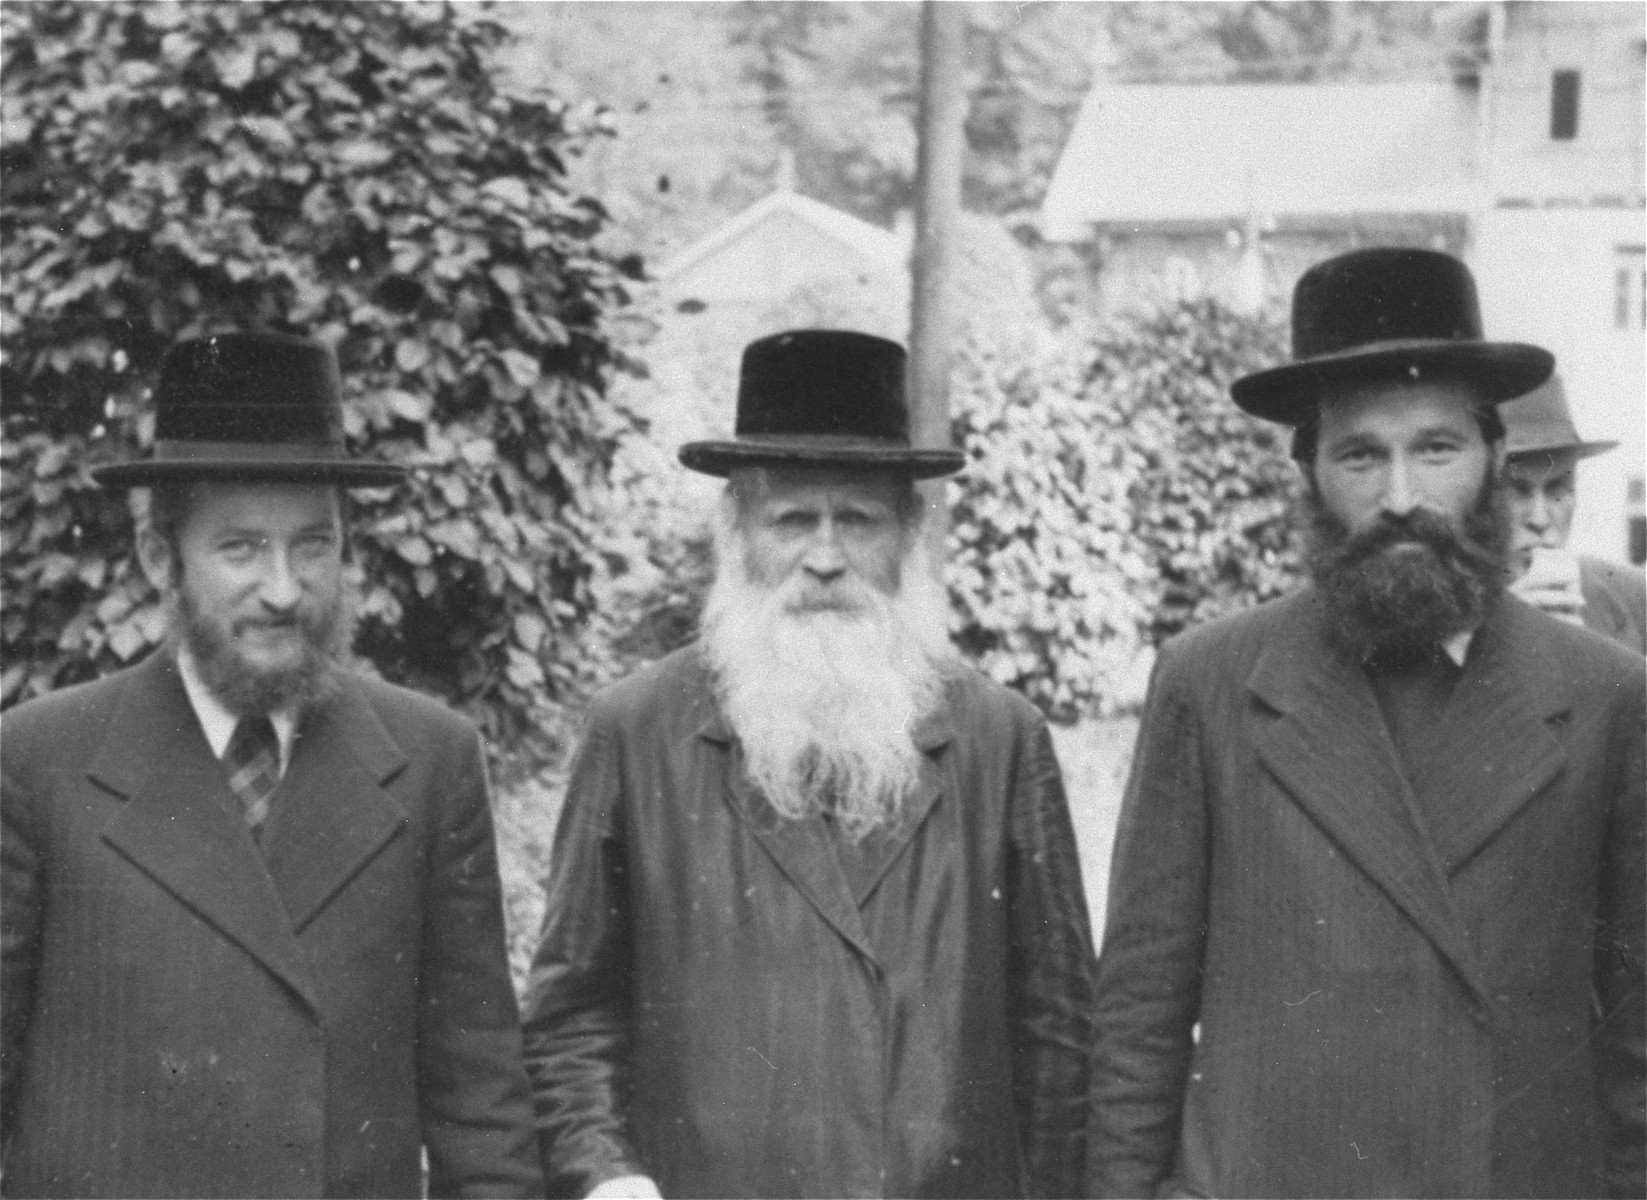 Three religious Jews pose on a street at a resort in the Tatra Mountains.    Pictured from left to right are:  Shaye David Lische, Isak Saleschütz and Reuven Weinstein.